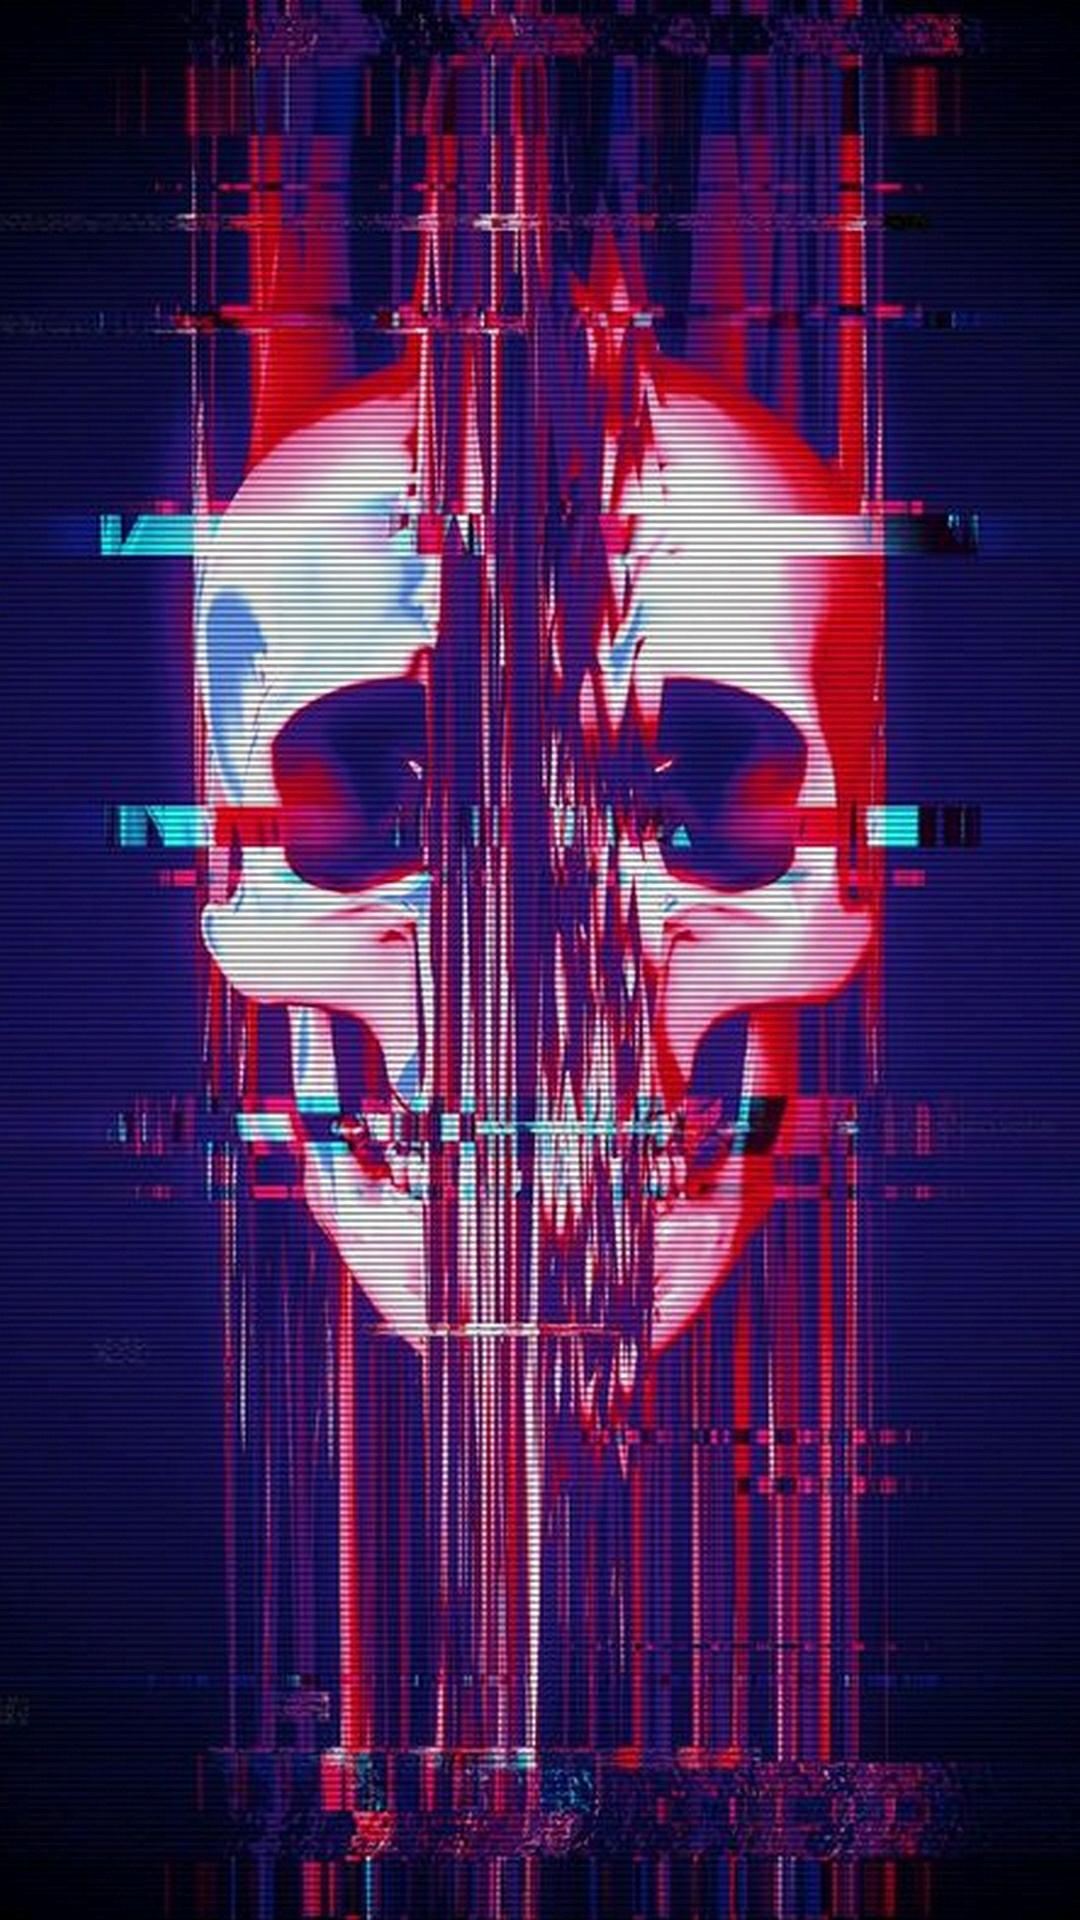 Free Download Glitch Art Effect Wallpaper Hd For Android Apk